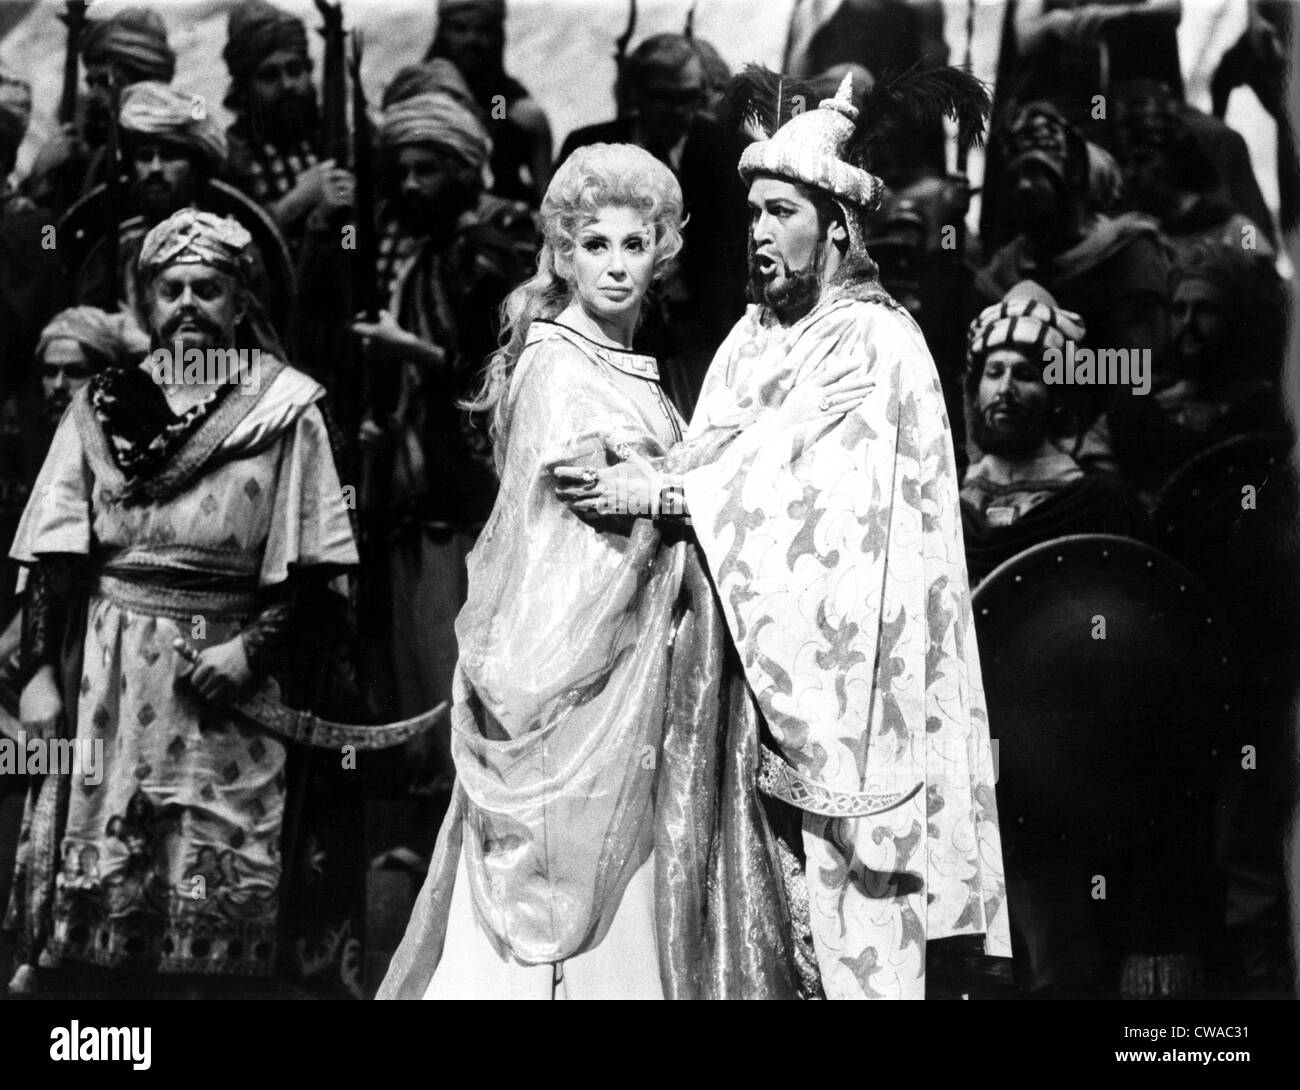 Beverly Sills, Justino Diaz performing Rossini's THE SIEGE OF CORINTH, Metropolitan Opera, New York, NY, 1975. - Stock Image